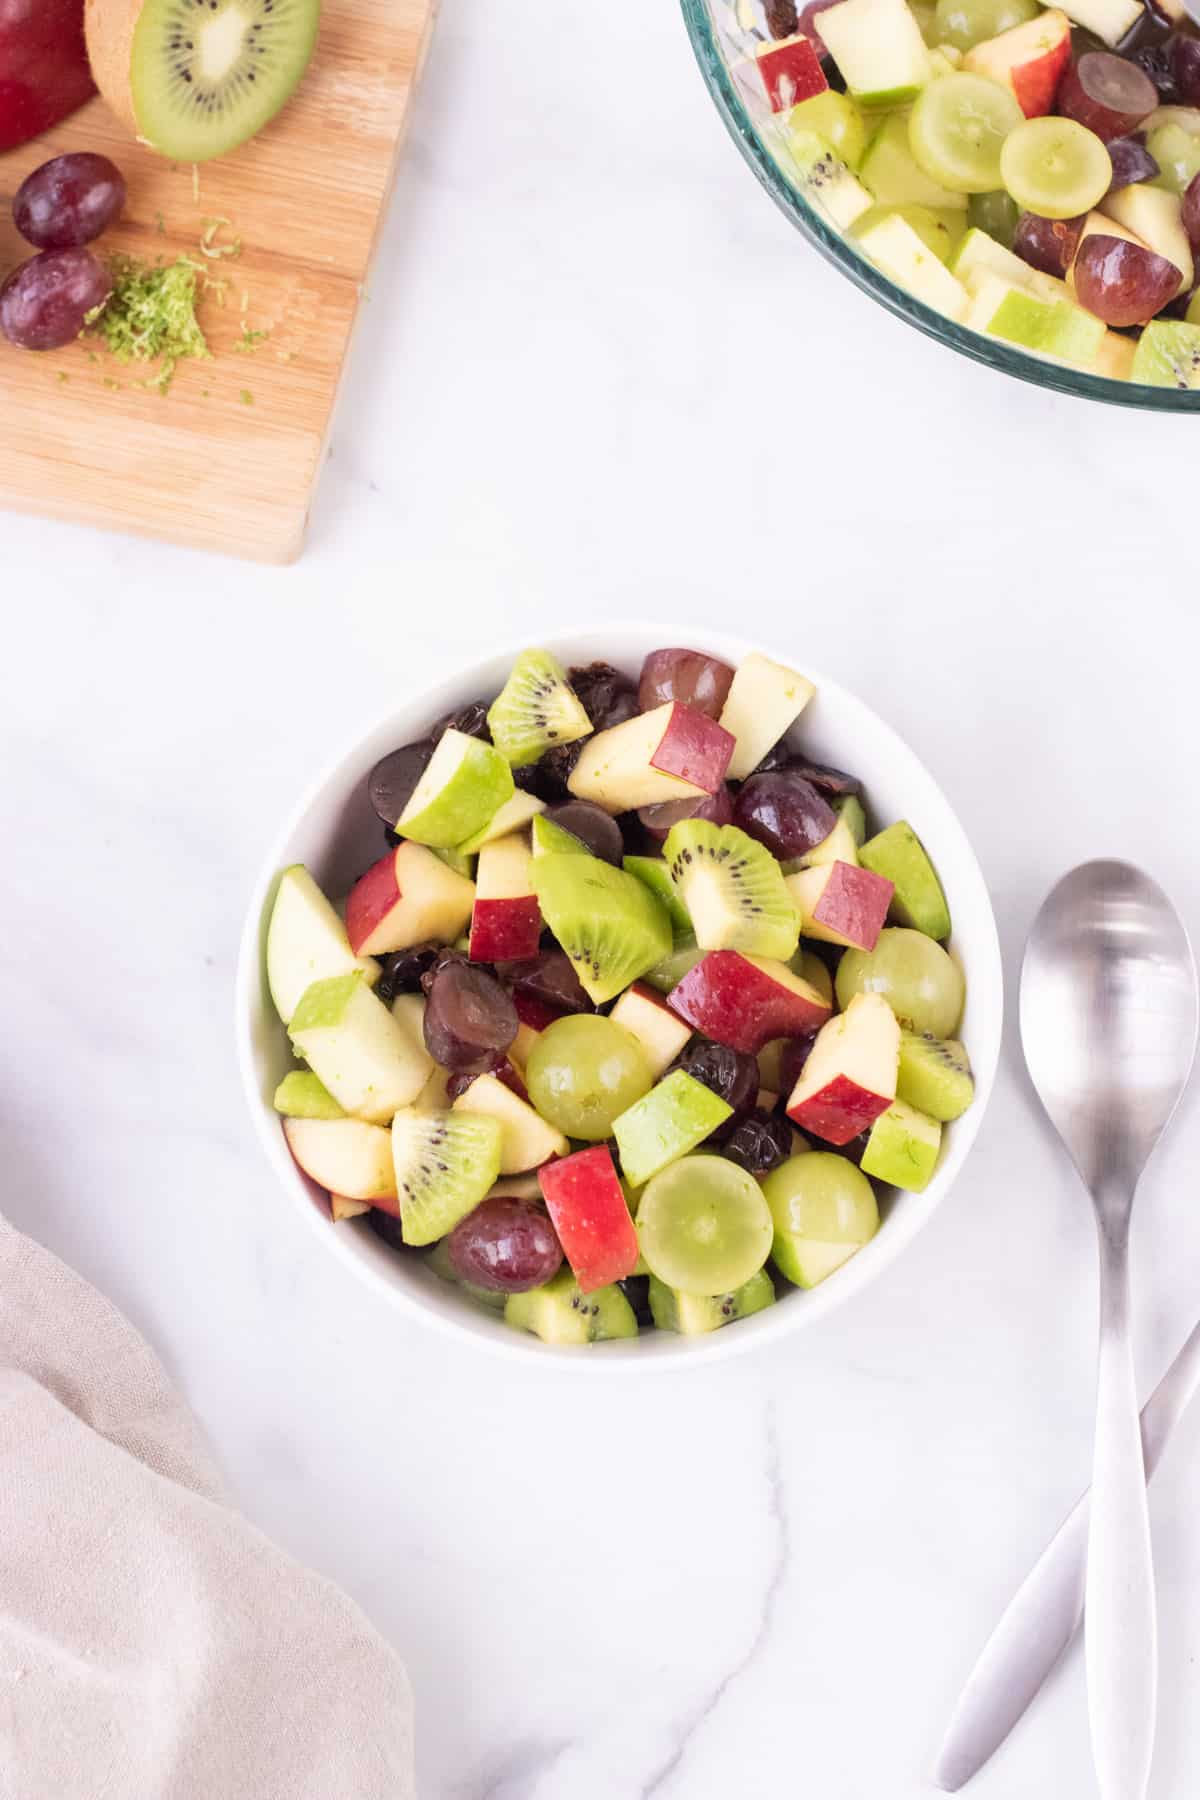 Top view image of holiday fruit salad in white bowl with red and green apples, red and green grapes, kiwi and dried cherries with wooden cutting board and glass bowl in upper right and left corners.